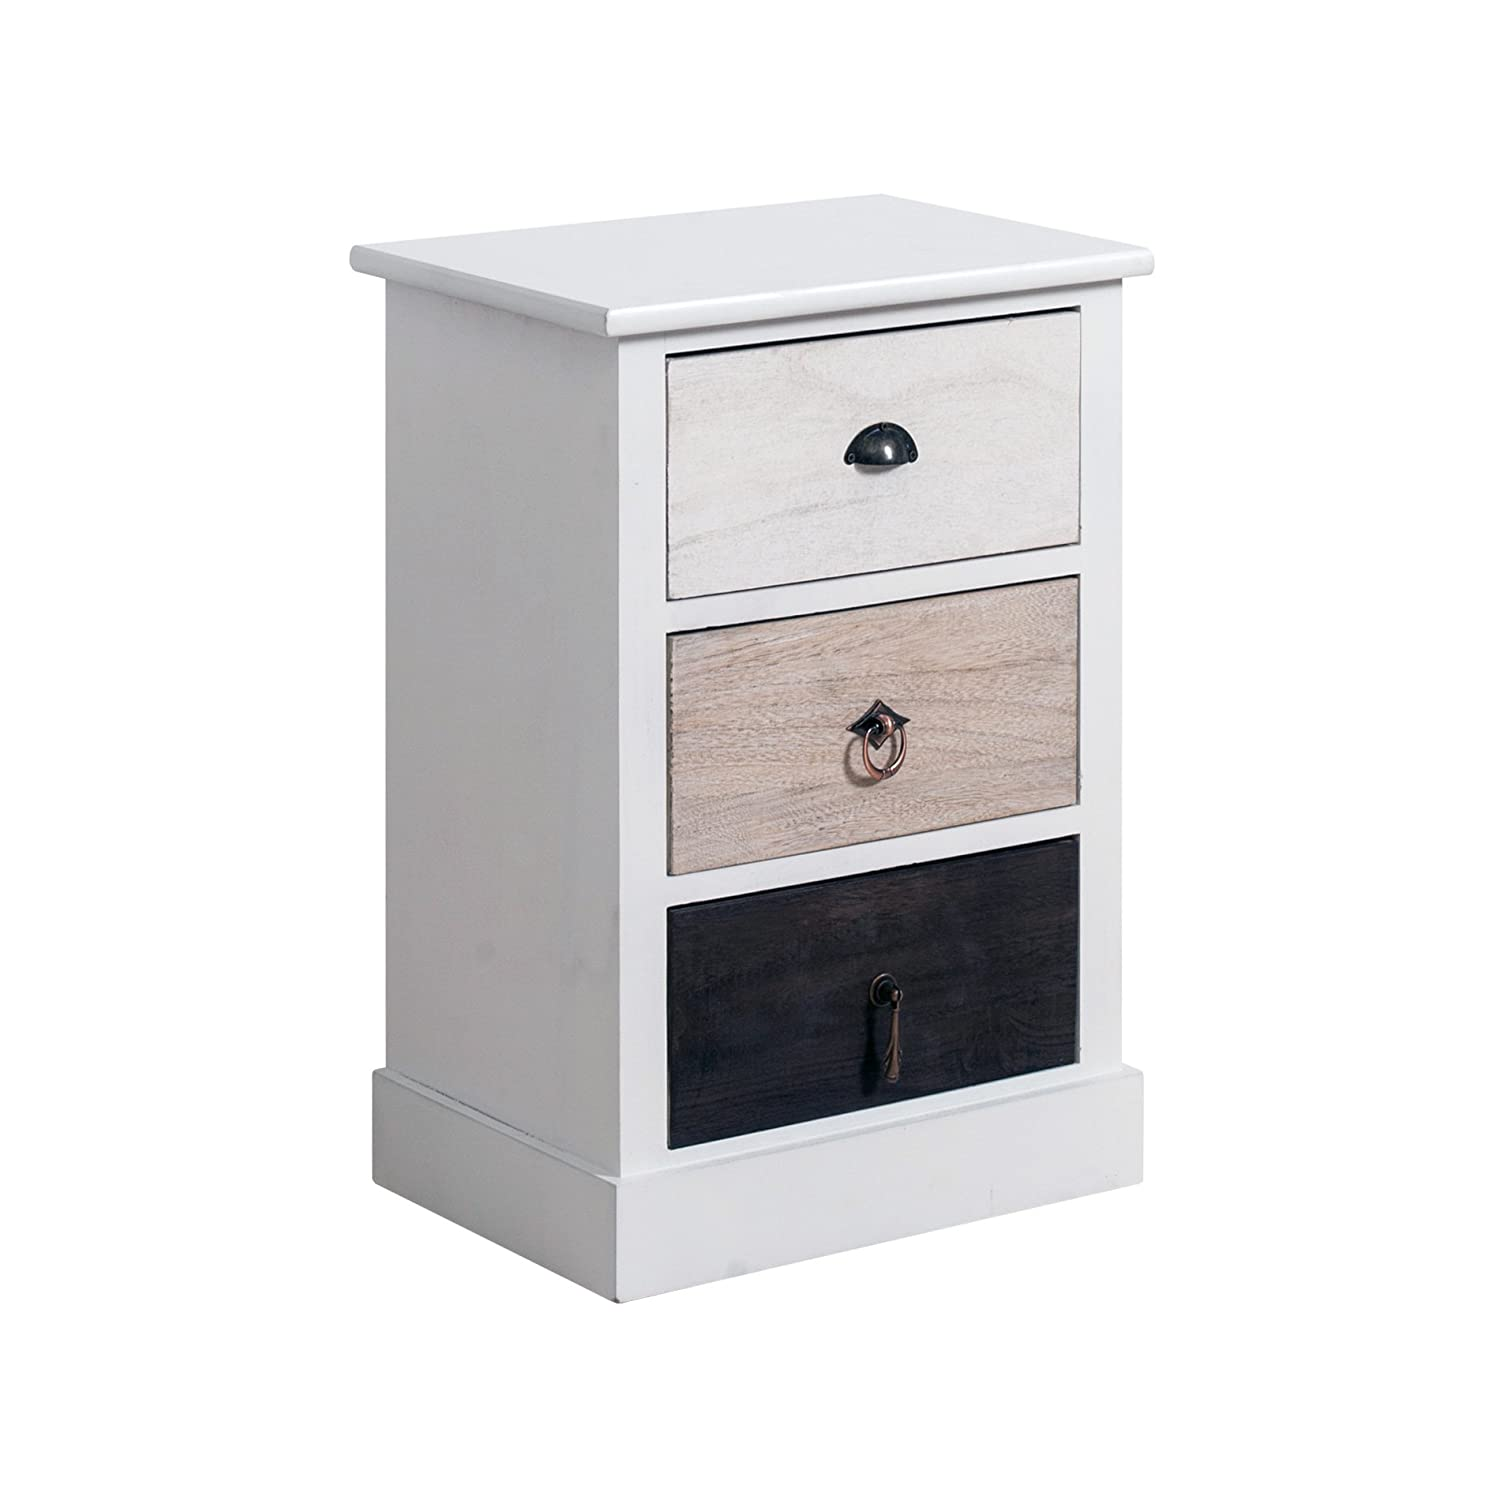 rebecca srl commode table de chevet table de nuit tiroir wild wood bois blanc beige with chevet. Black Bedroom Furniture Sets. Home Design Ideas